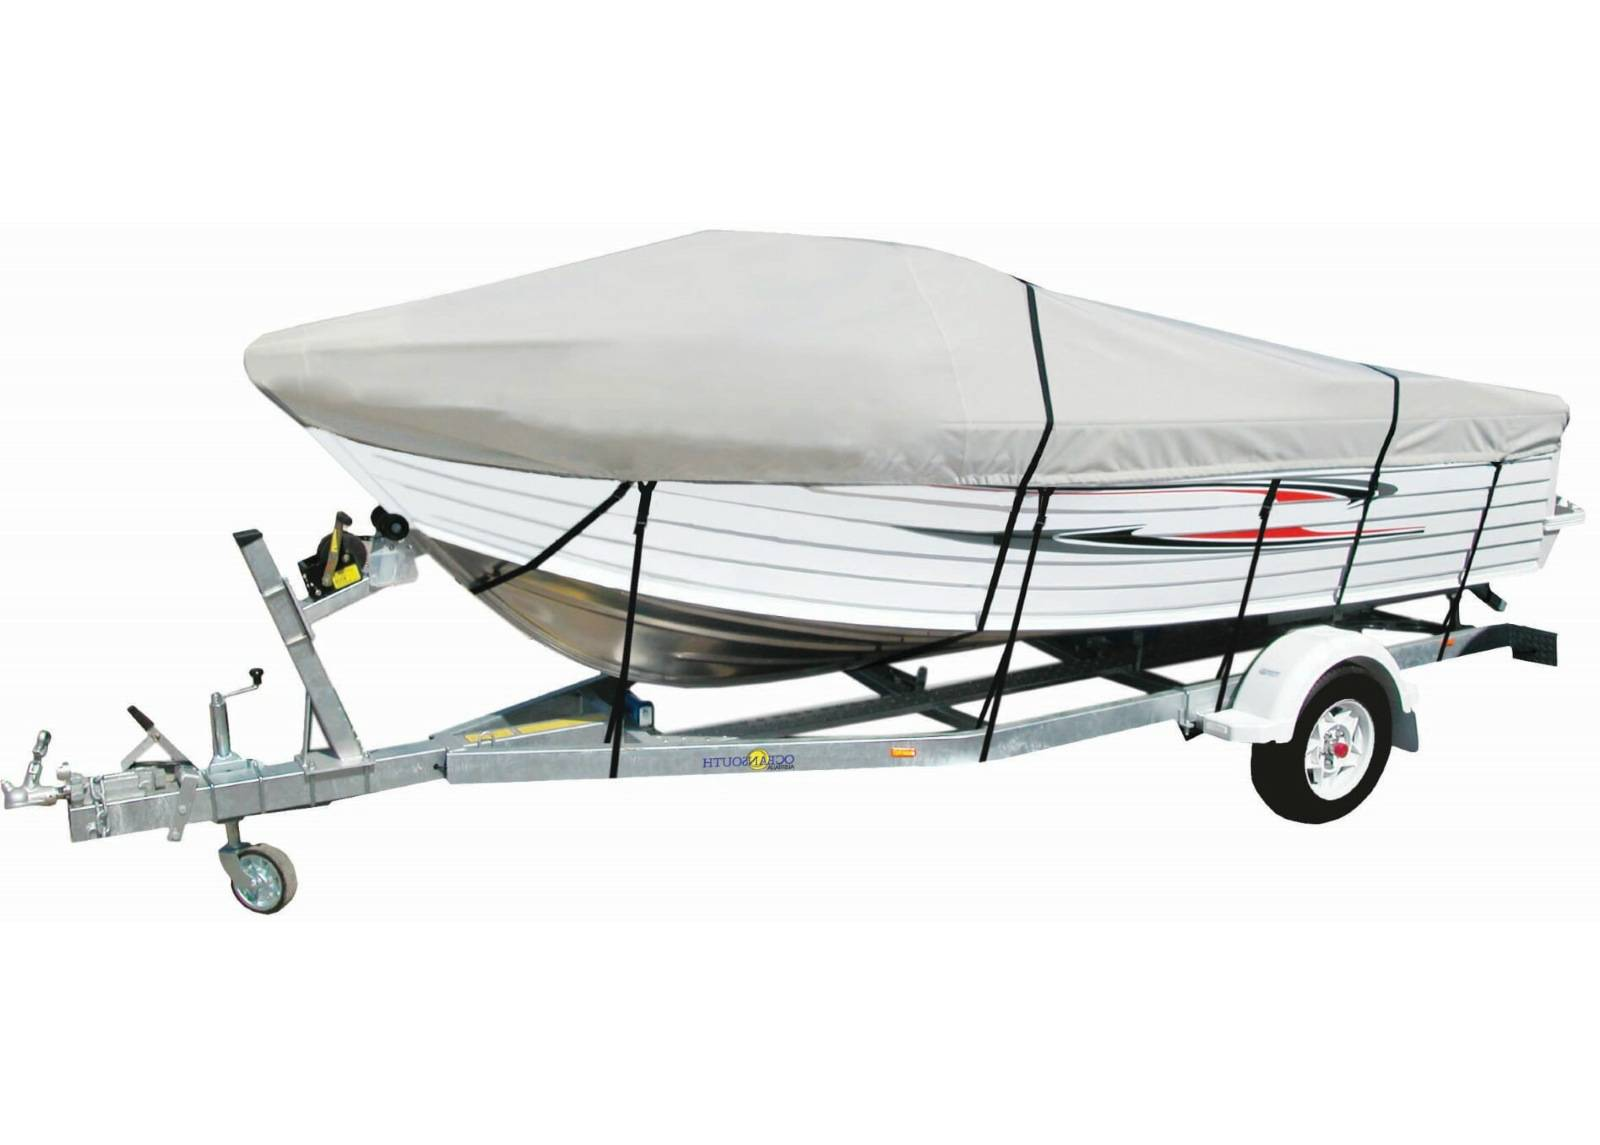 OceanSouth Venepeite Runabout tyyppisille veneille 4.1-4.3 m